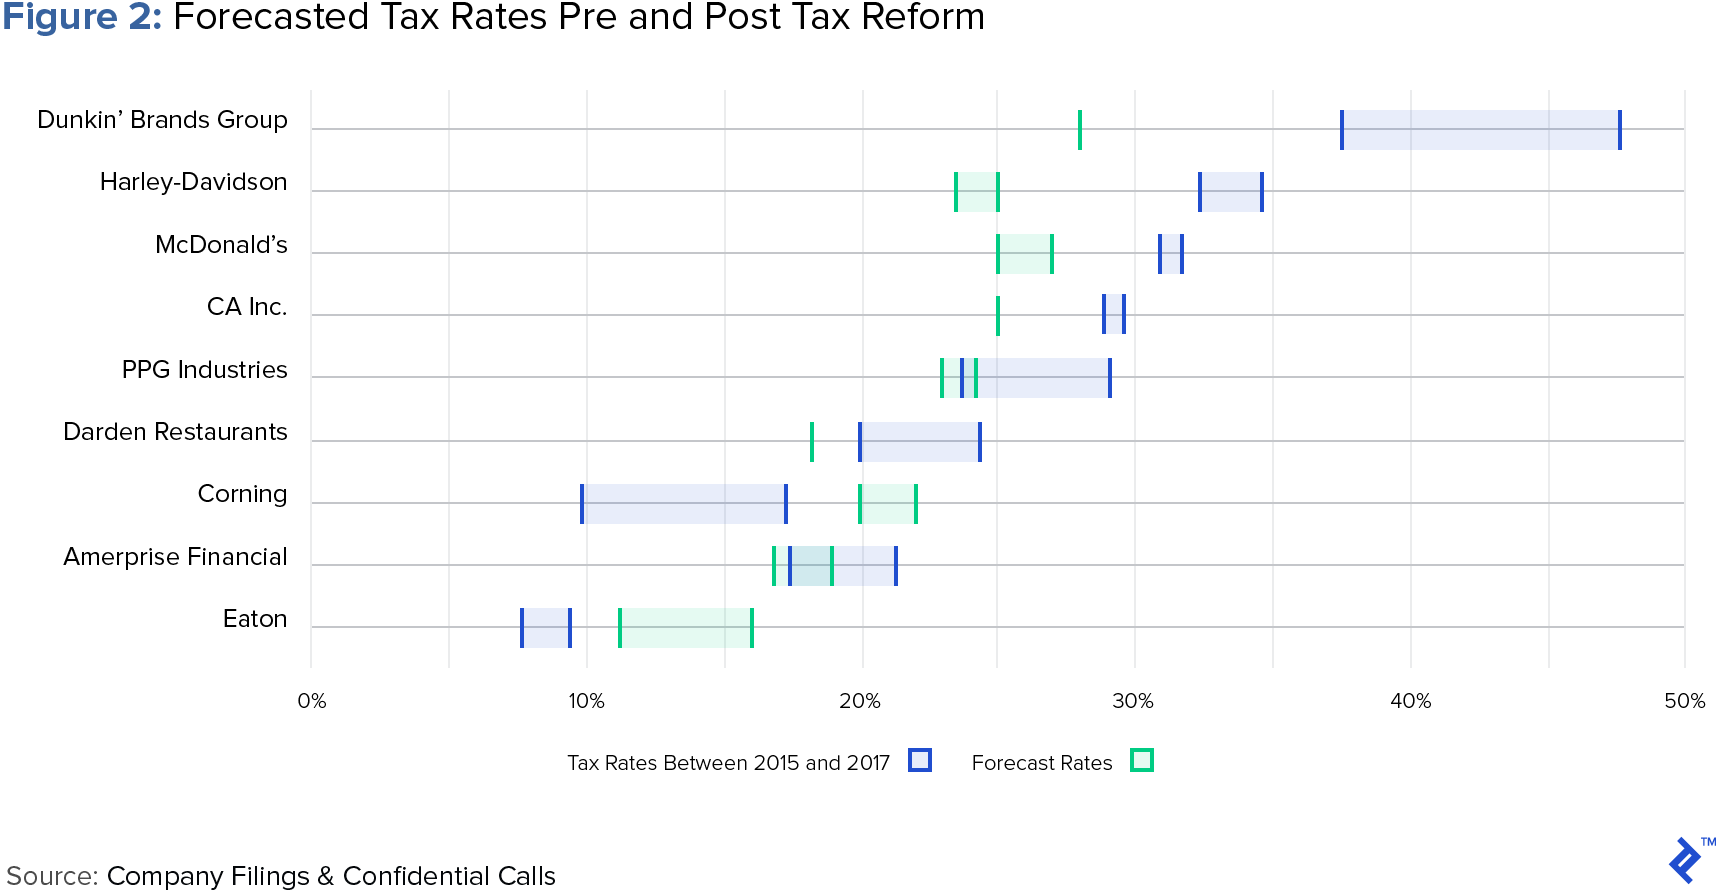 visual display showing forecasted tax rates pre and post tax reform